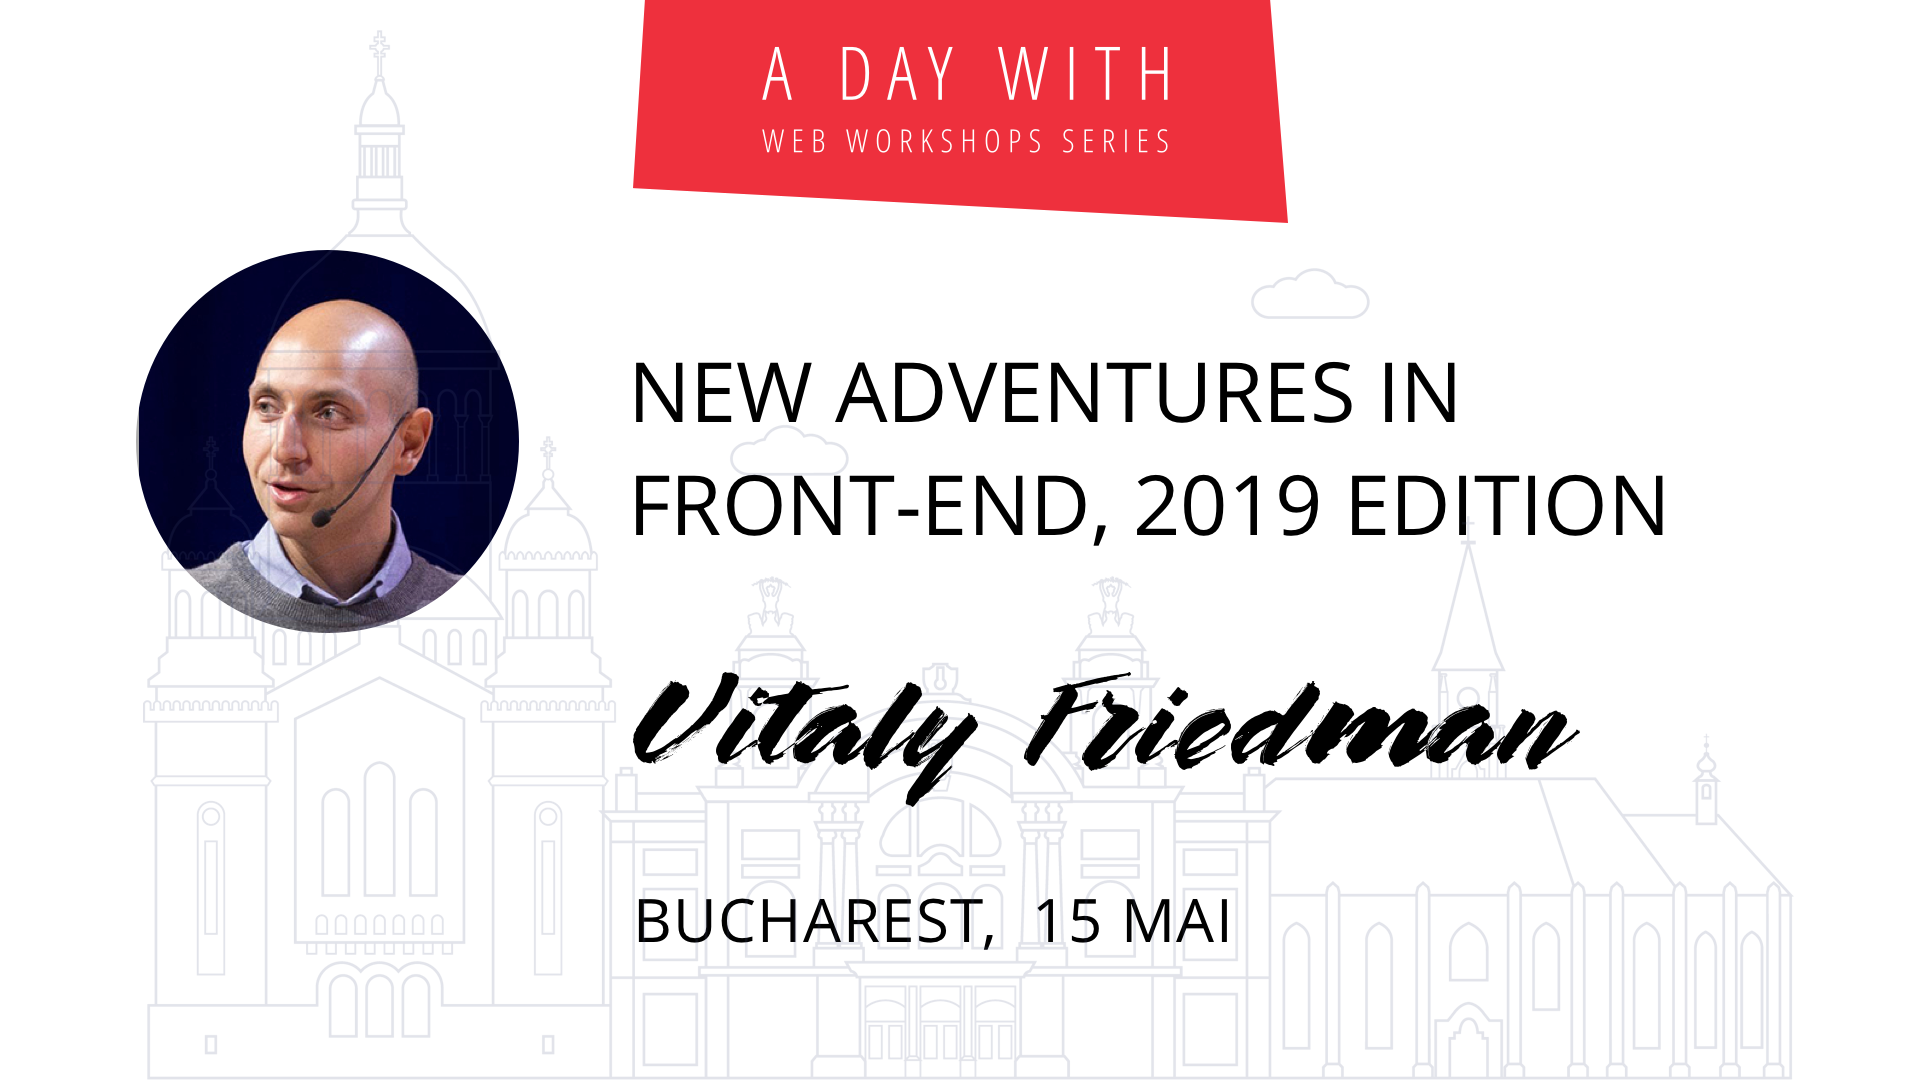 New Adventures in Front-End, 2019 Edition w/ Vitaly Friedman